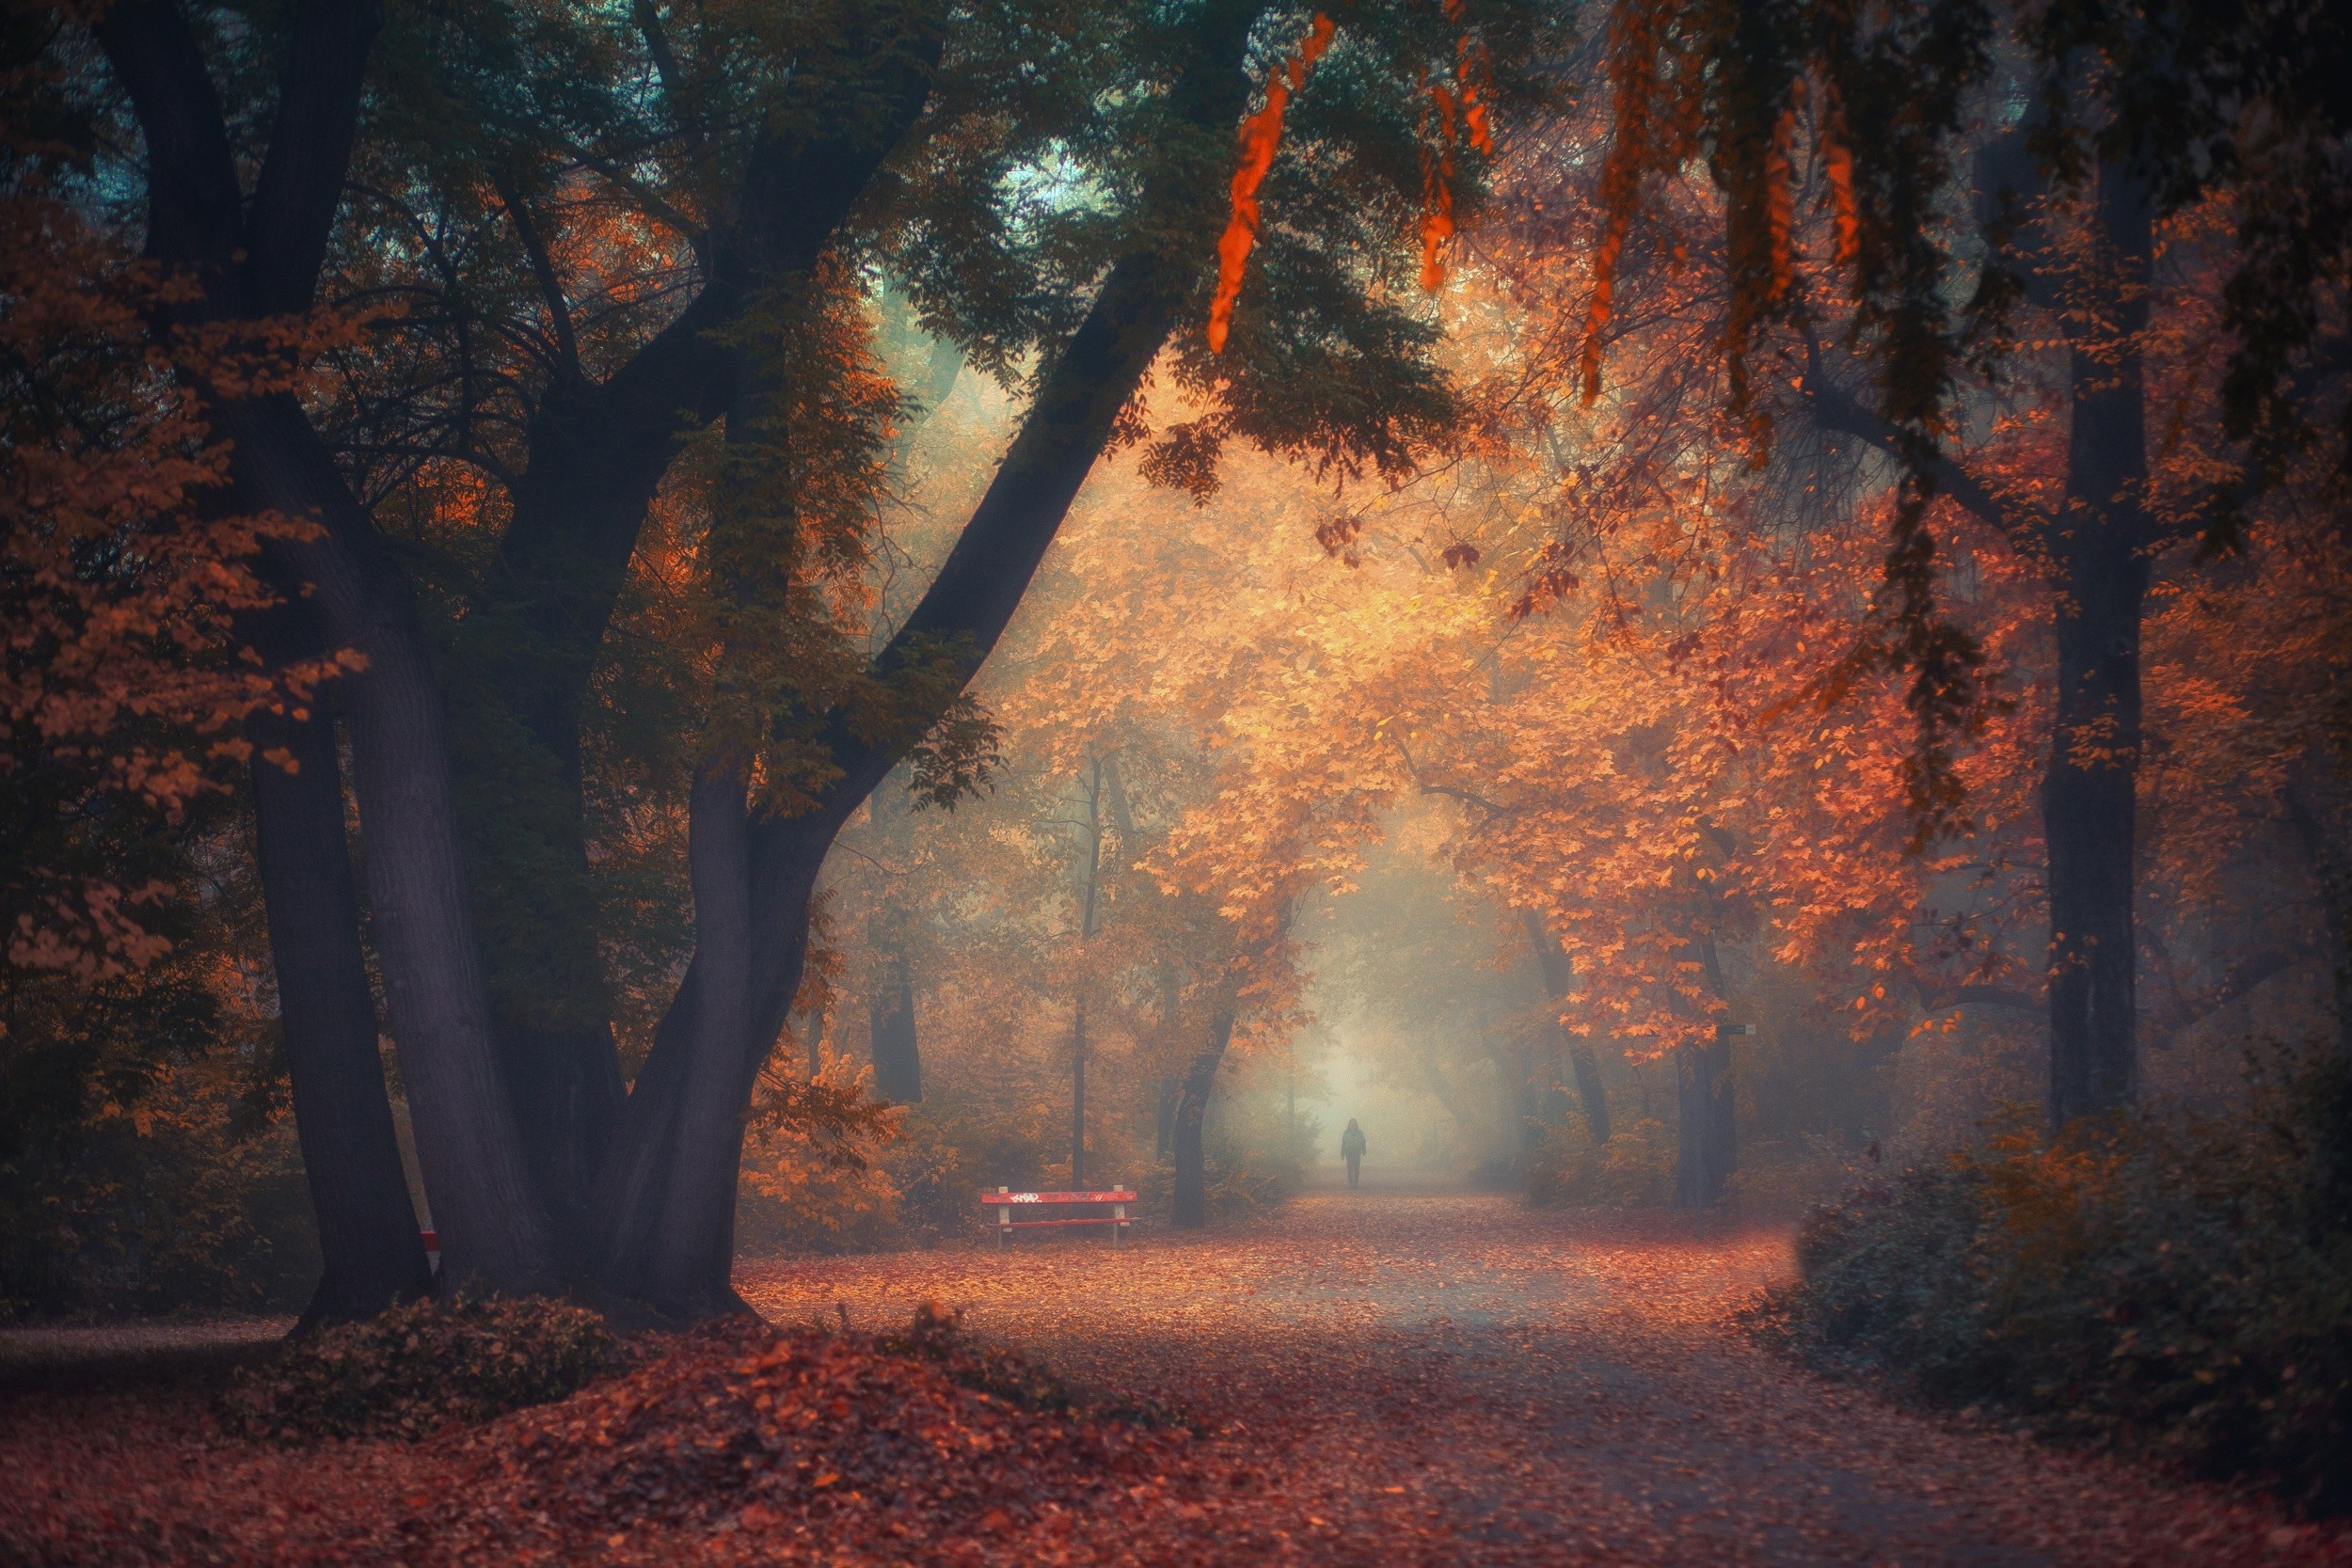 Free Wallpaper Backgrounds For Fall Walking Nature Photography Landscape Park Morning